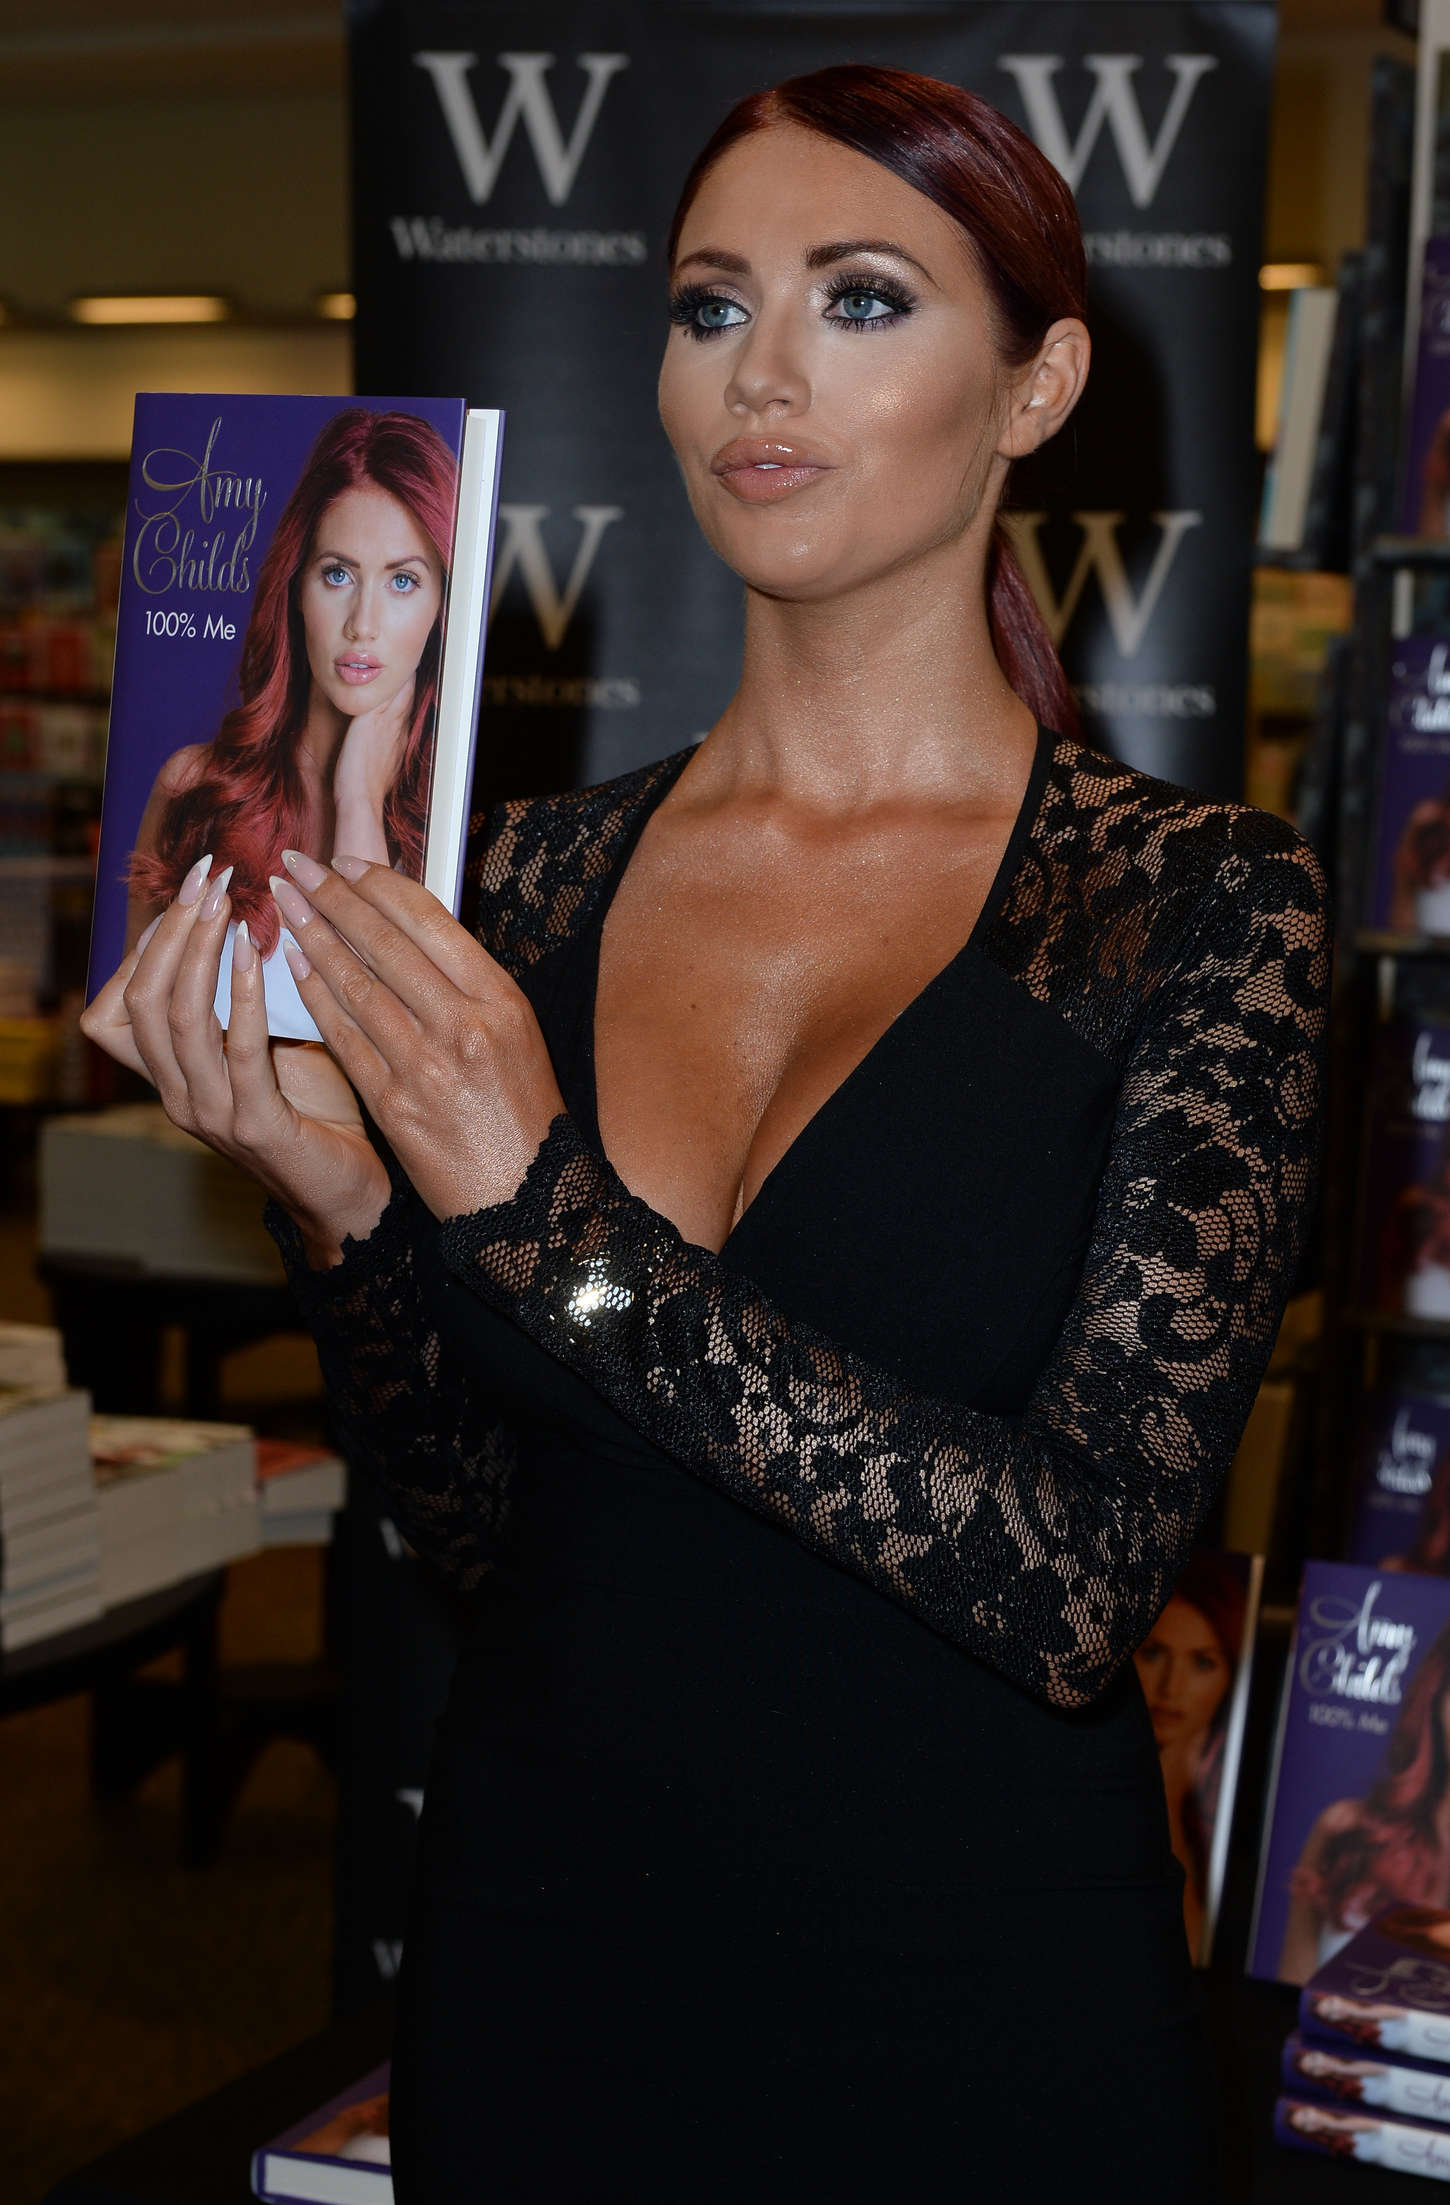 Amy Childs Signs copies of her book % Me in Manchester